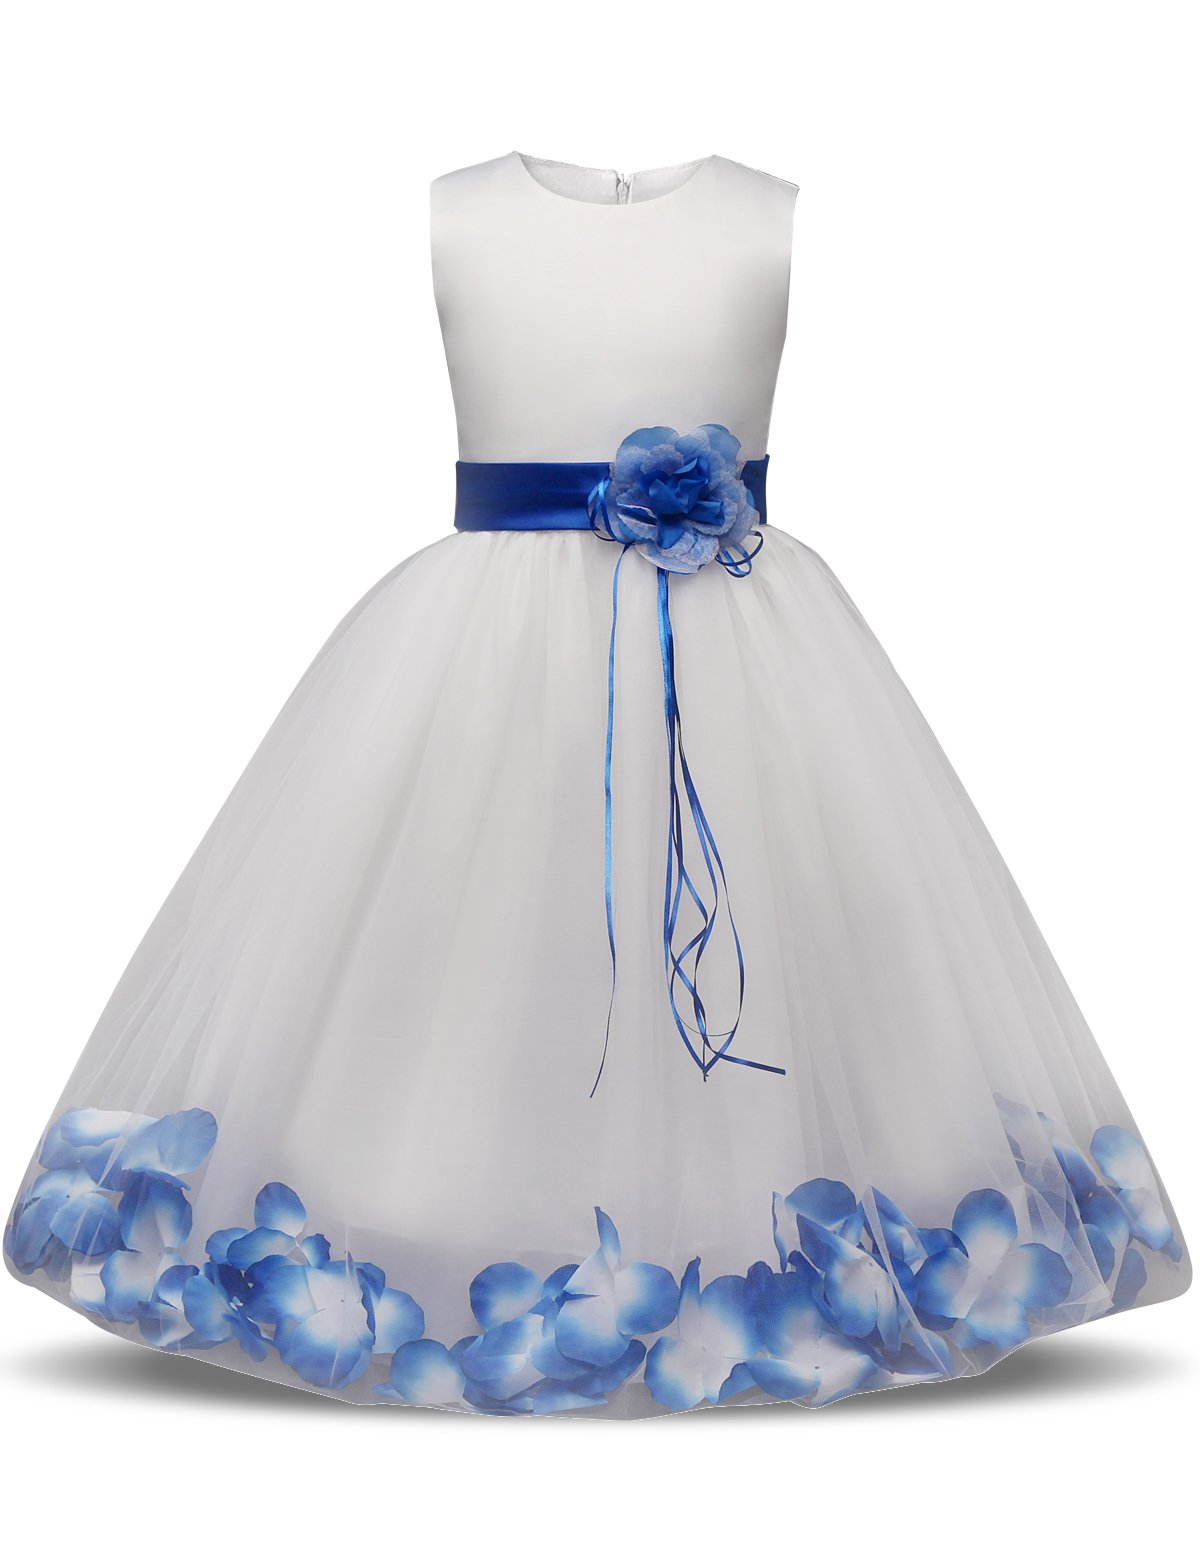 0d1d9a12f34 Galleon - NNJXD Girl Tutu Flower Petals Bow Bridal Dress For Toddler Girl  Size 3-4 Years Big Blue